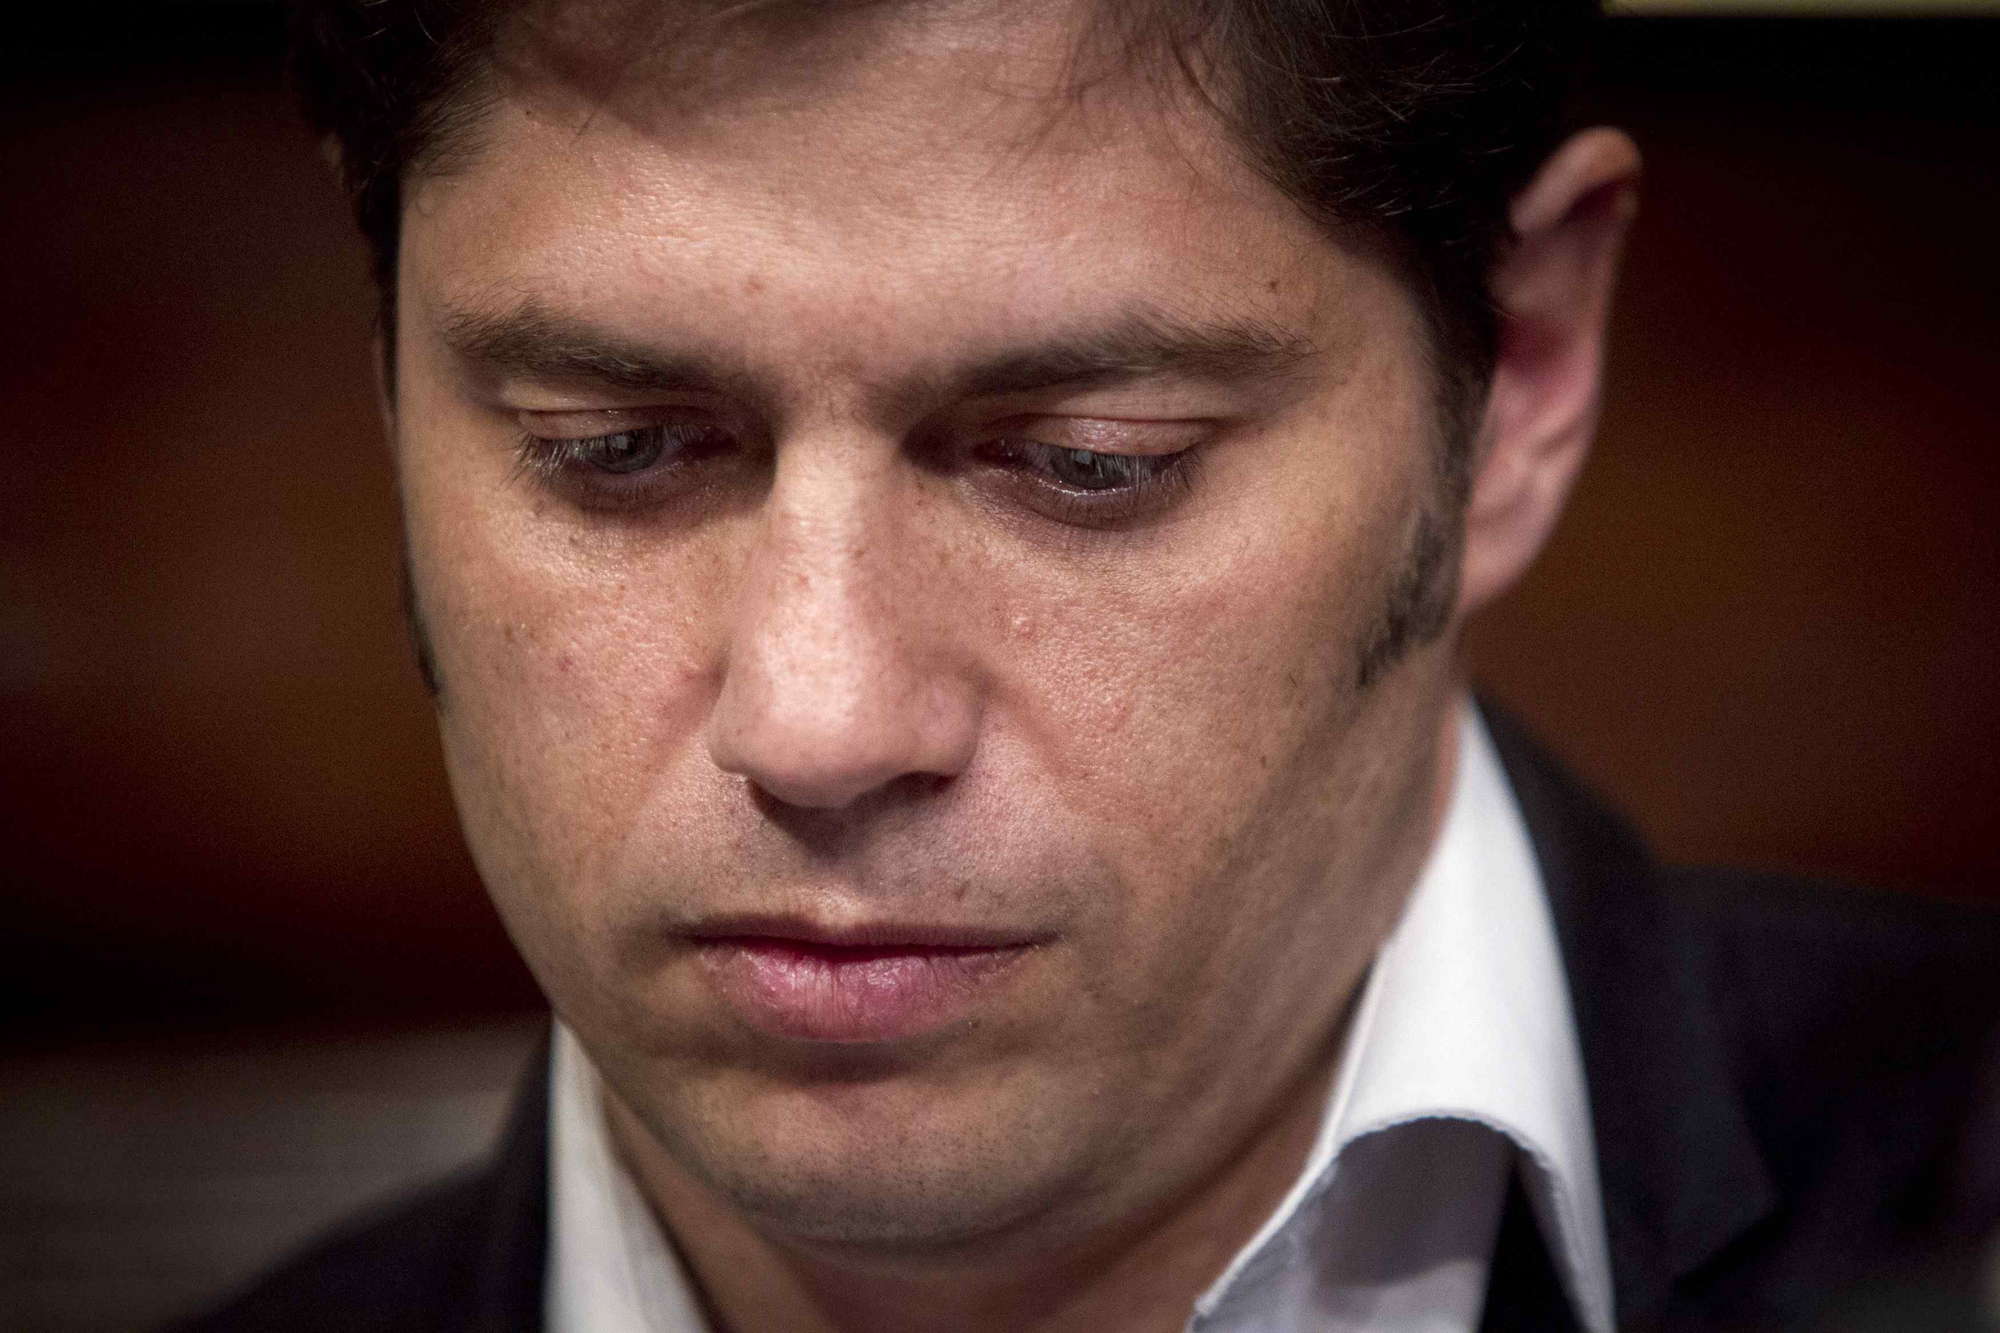 Argentina's Economy Minister Axel Kicillof speaks to the media at a press conference at the Argentine Consulate in New York, July 30, 2014.